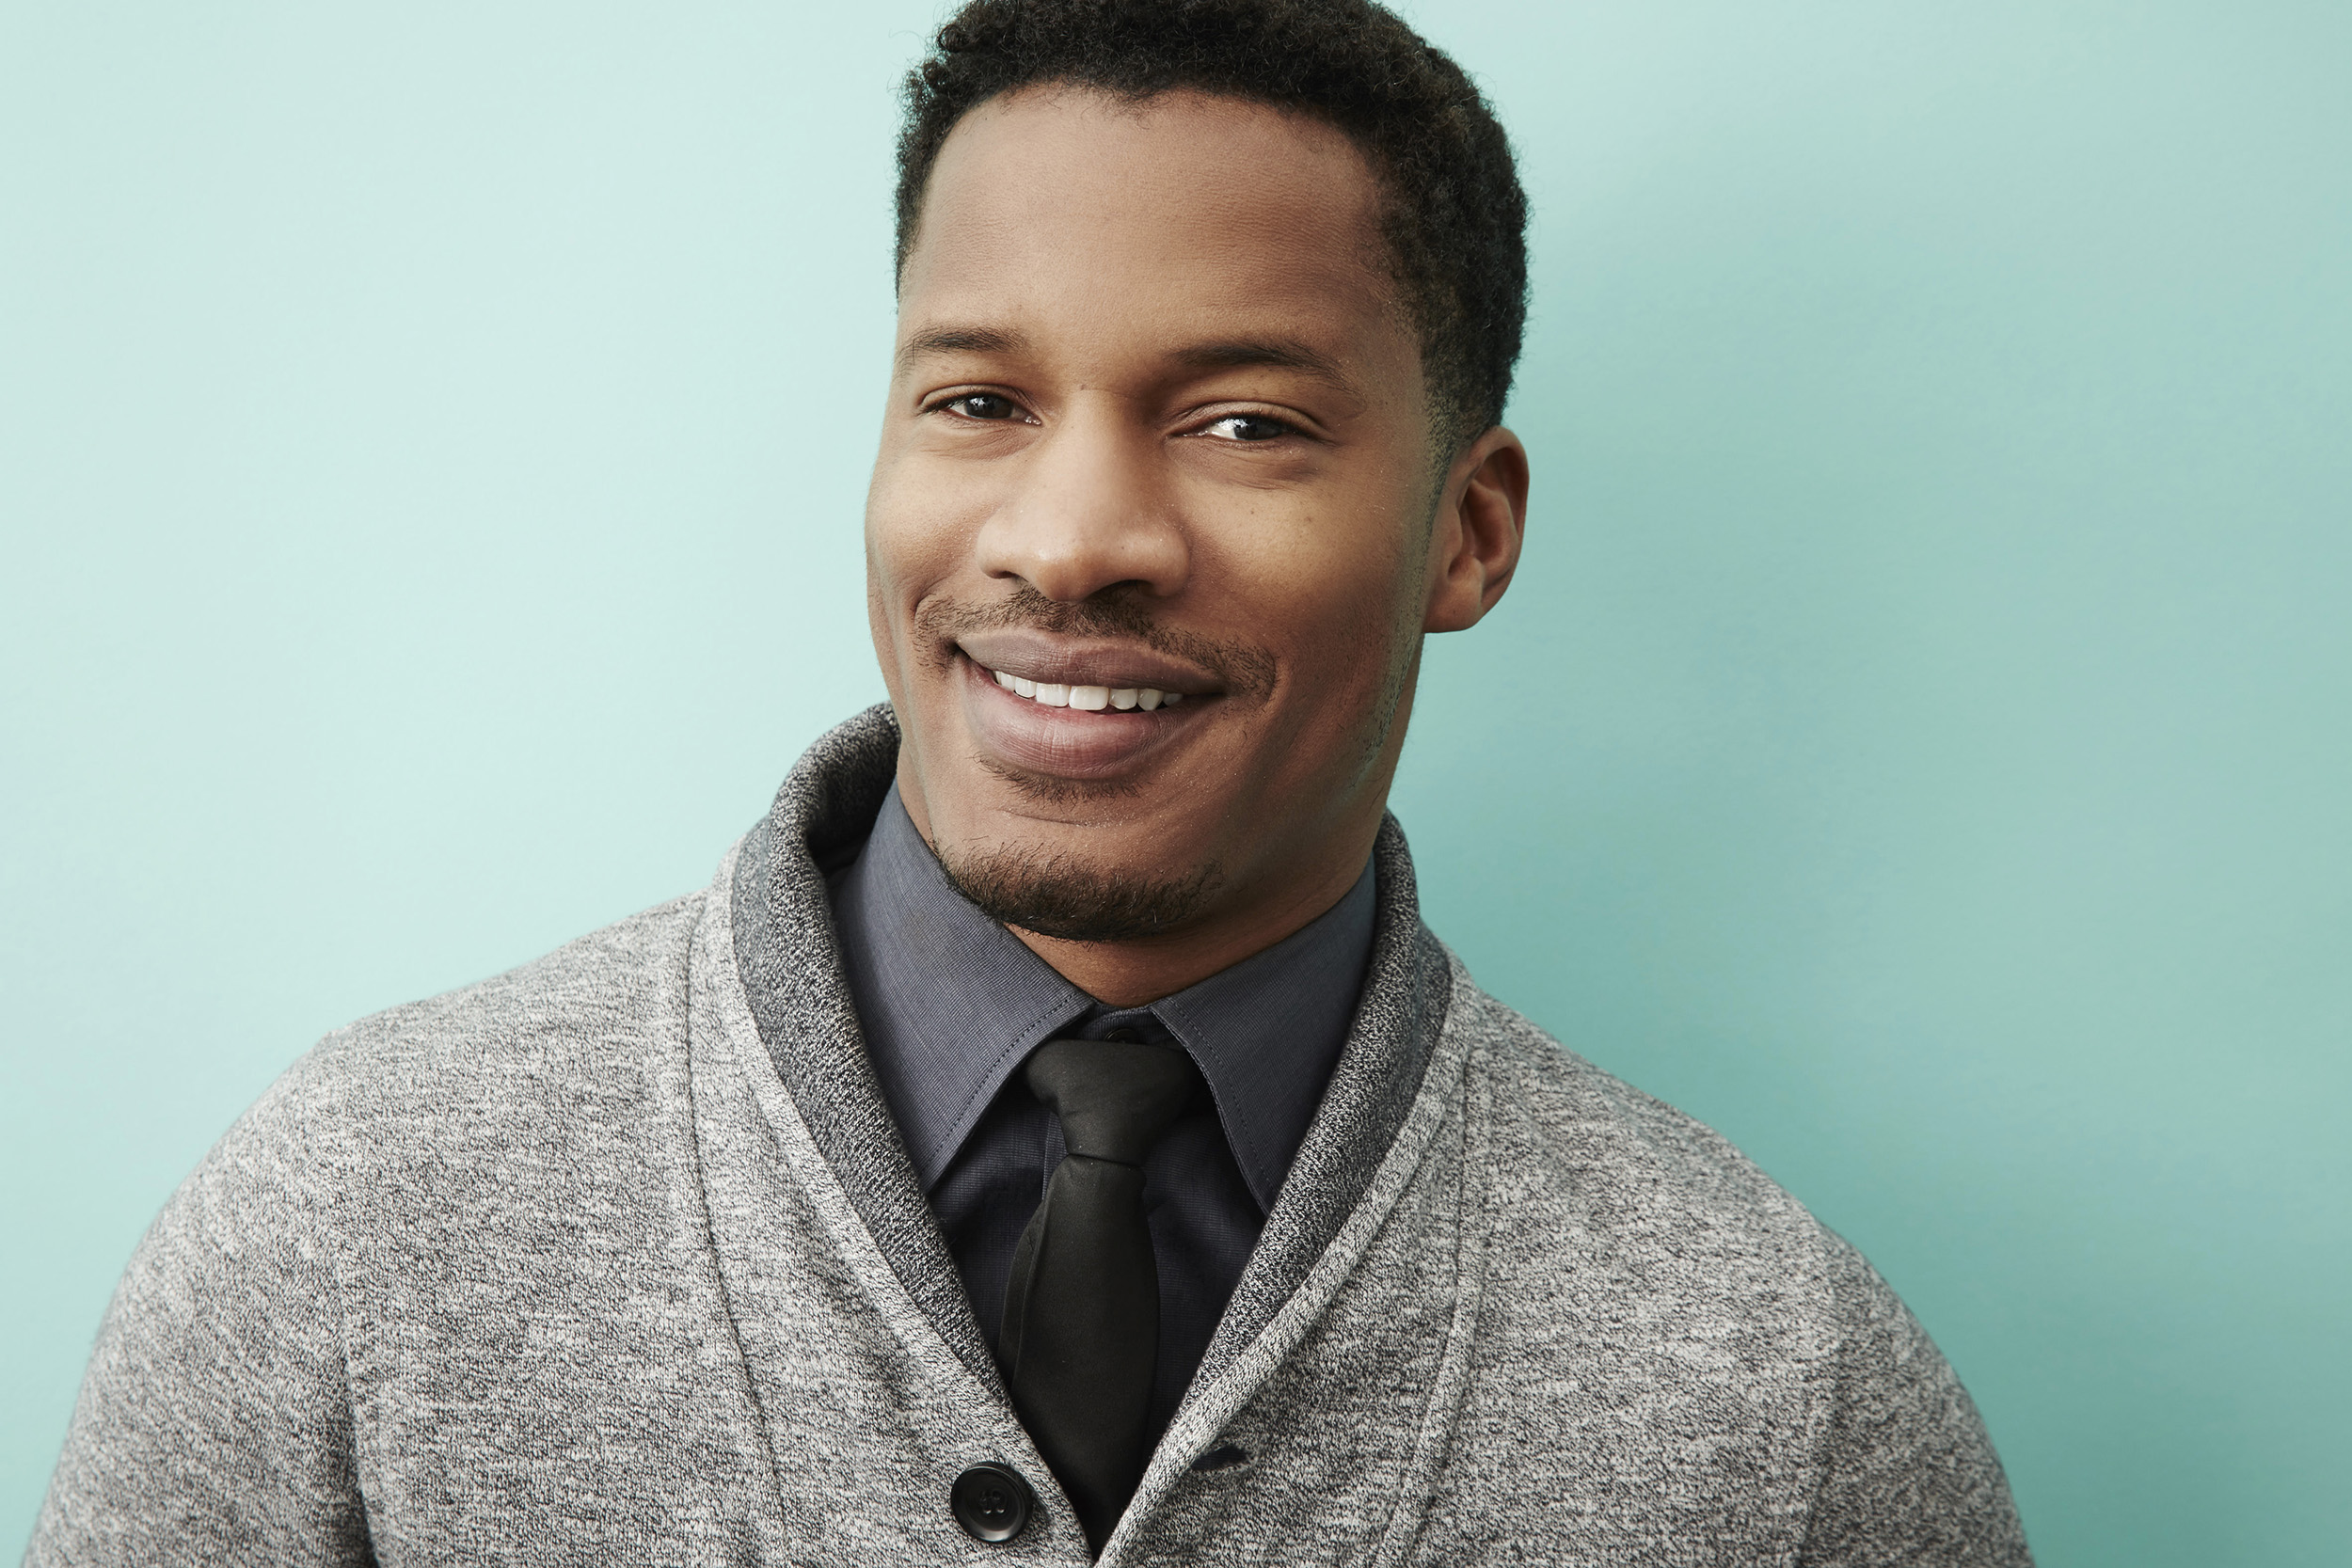 Nate Parker of 'The Birth of a Nation' at the 2016 Sundance Film Festival Getty Images Portrait Studio in Park City, Utah on Jan. 25, 2016.